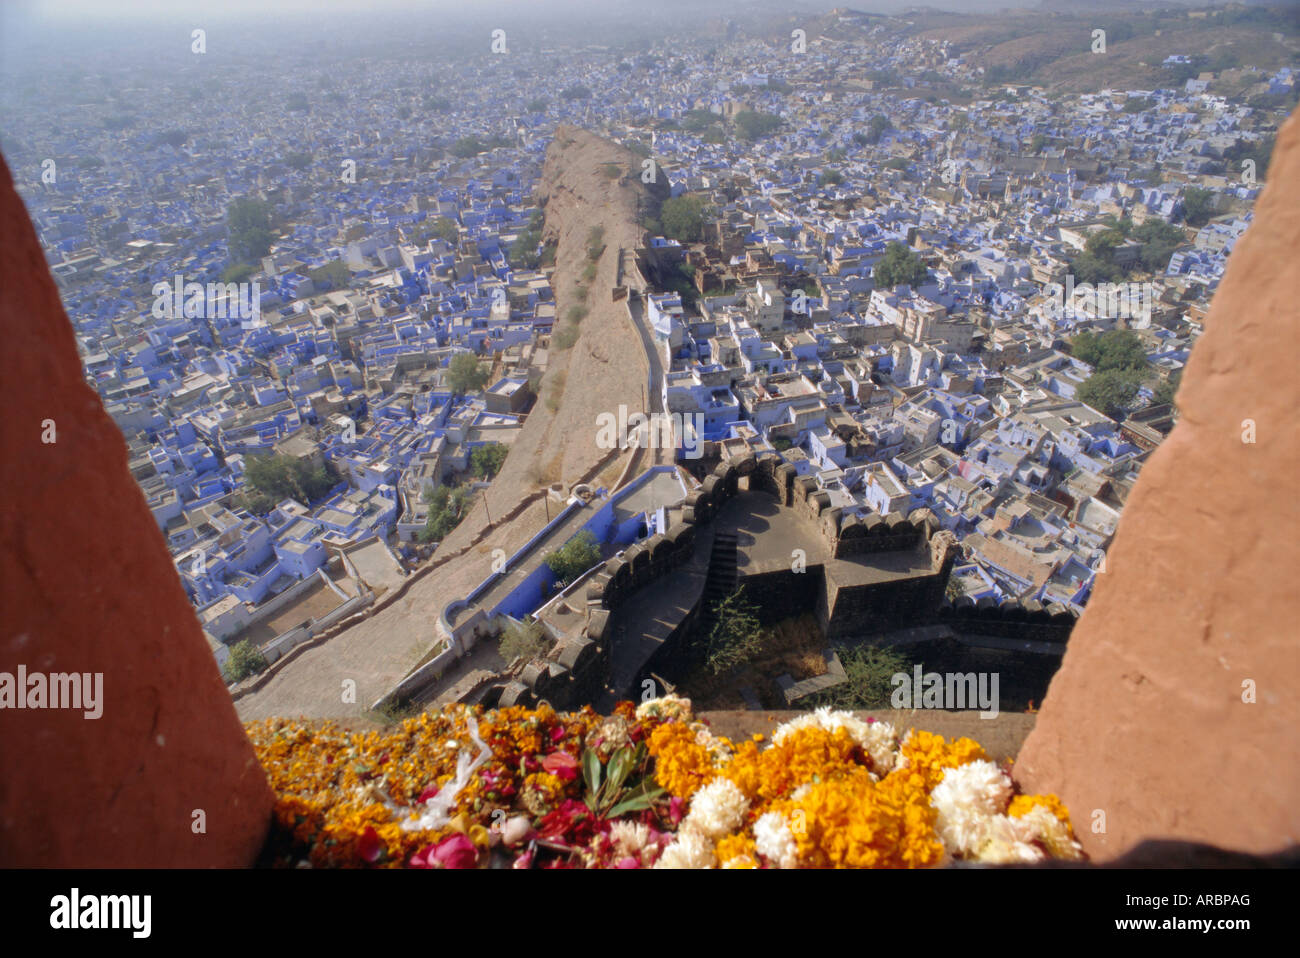 View from the fort to the blue quarter of Brahmin caste residents, Jodhpur, Rajasthan, India - Stock Image